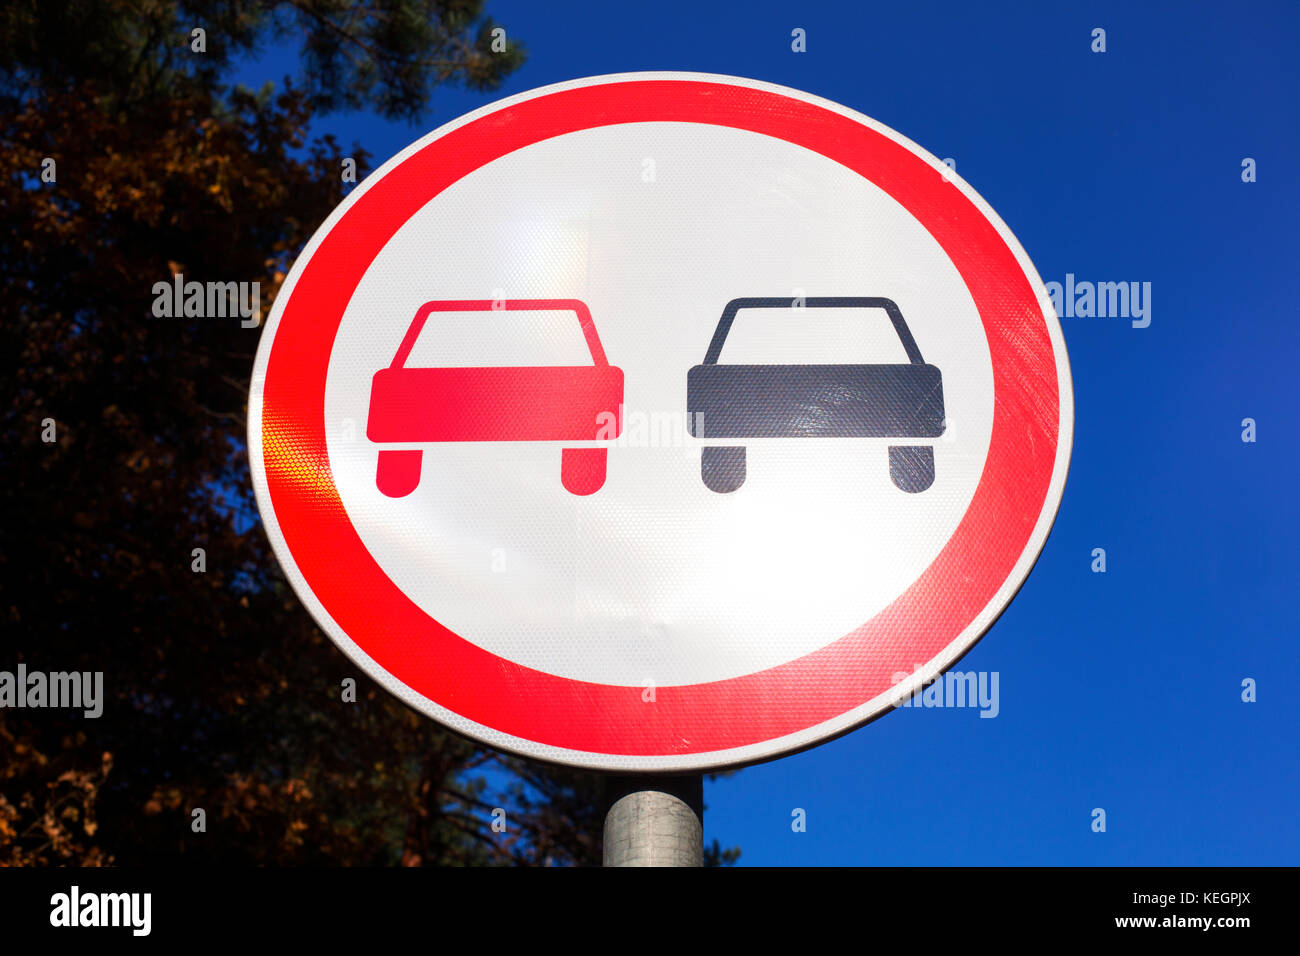 No Overtaking road sign against blue sky and tree. - Stock Image